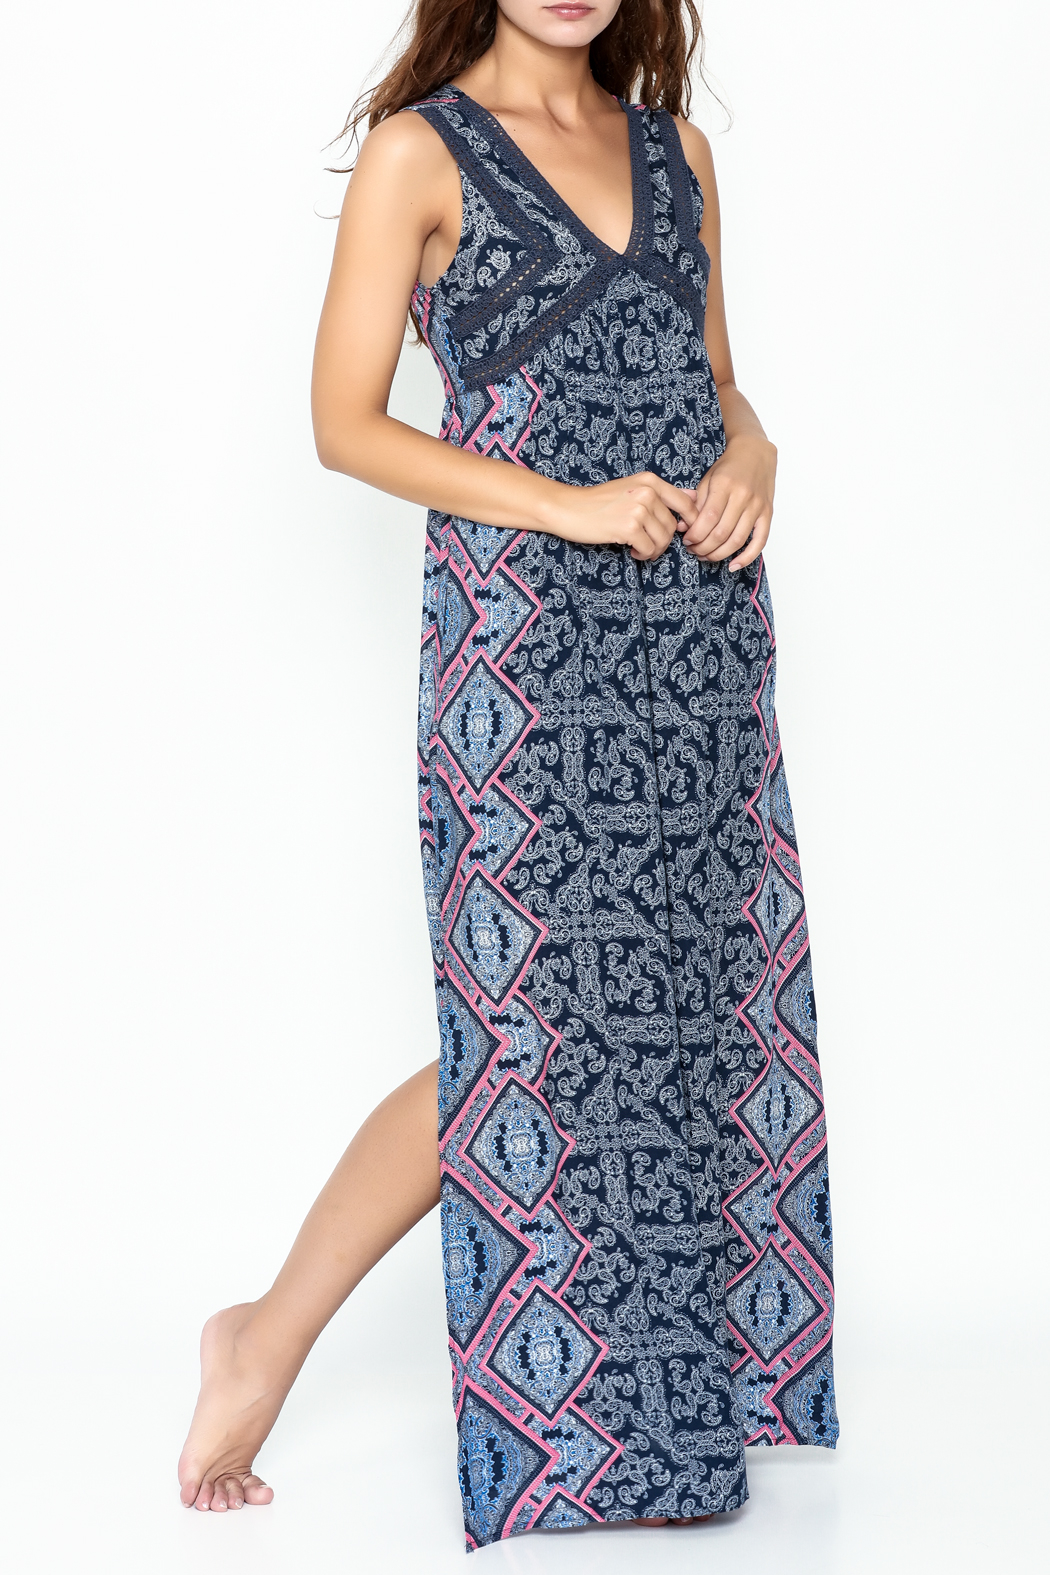 Very J Indika Summer Dress - Front Cropped Image